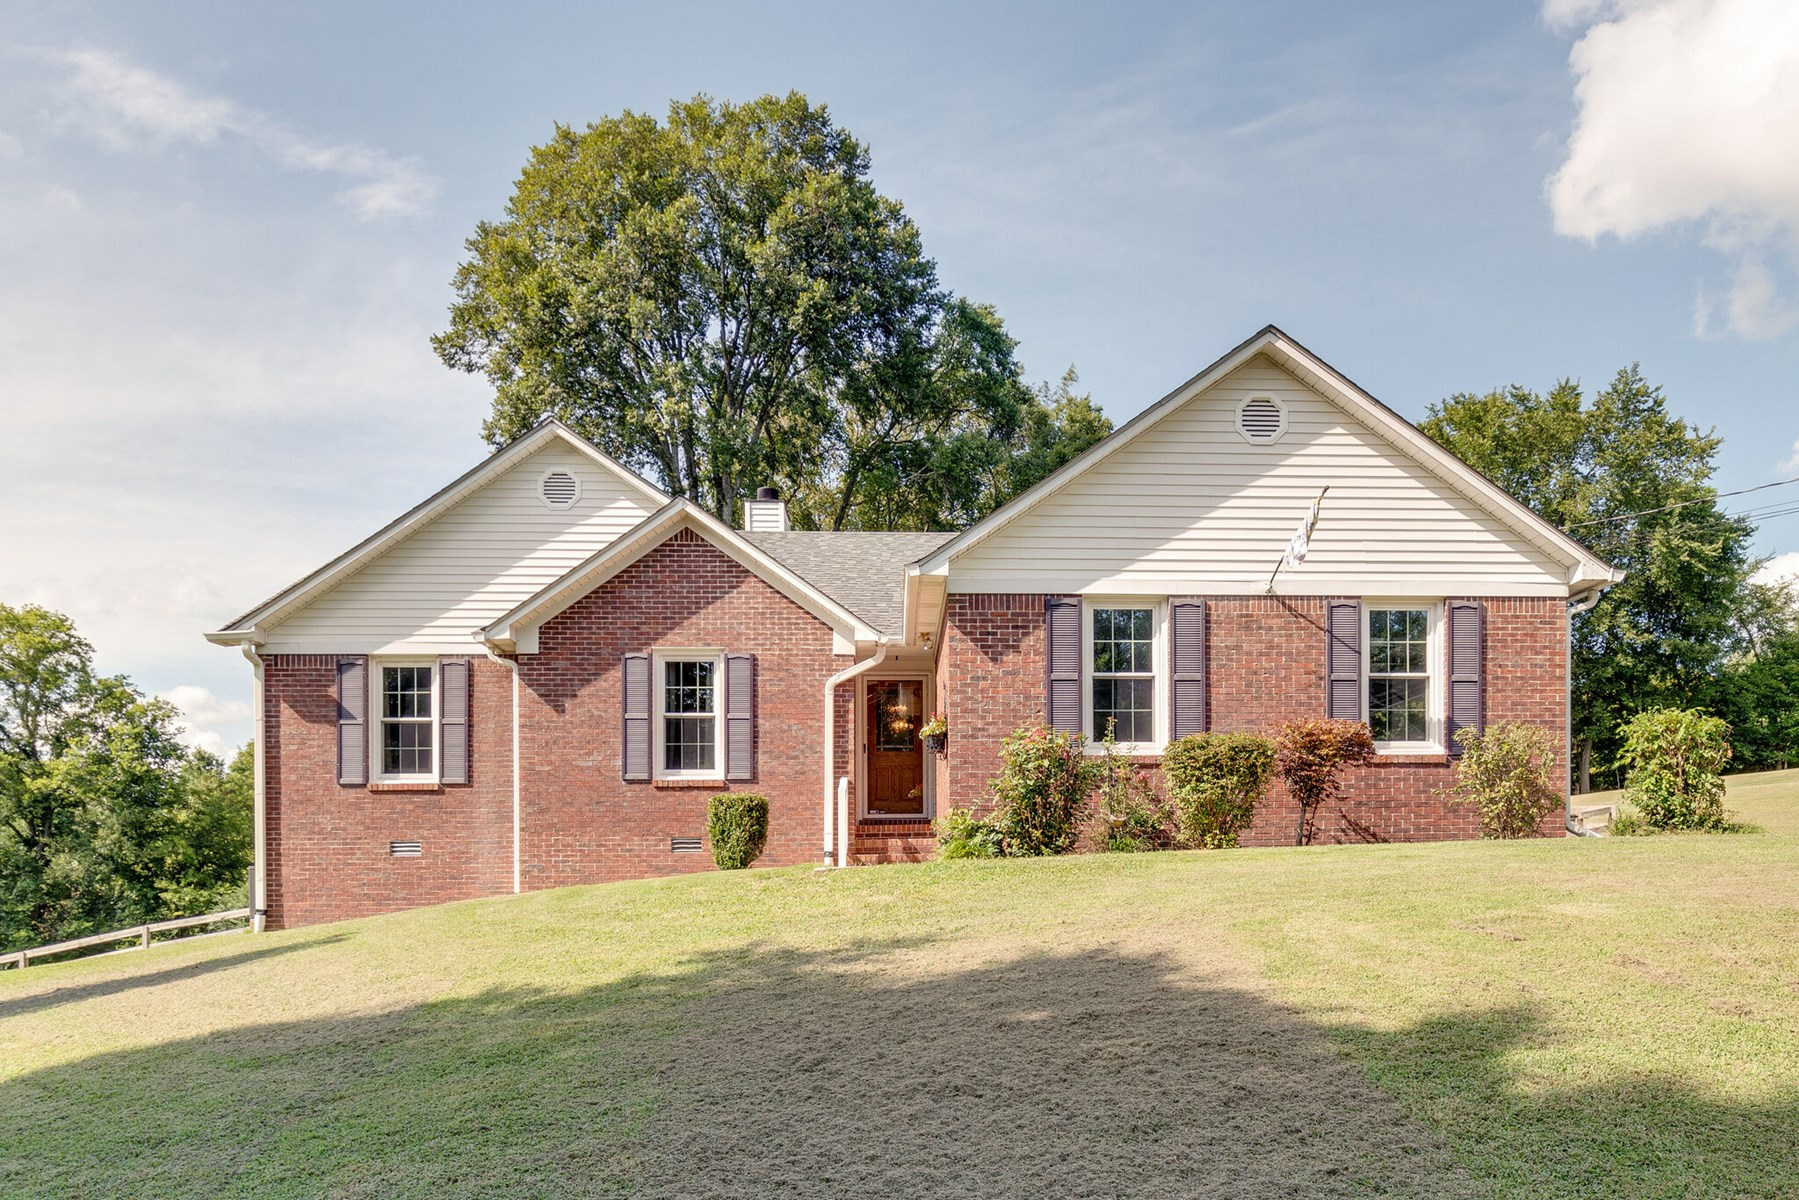 Country Home with Acreage in Columbia, Tennessee